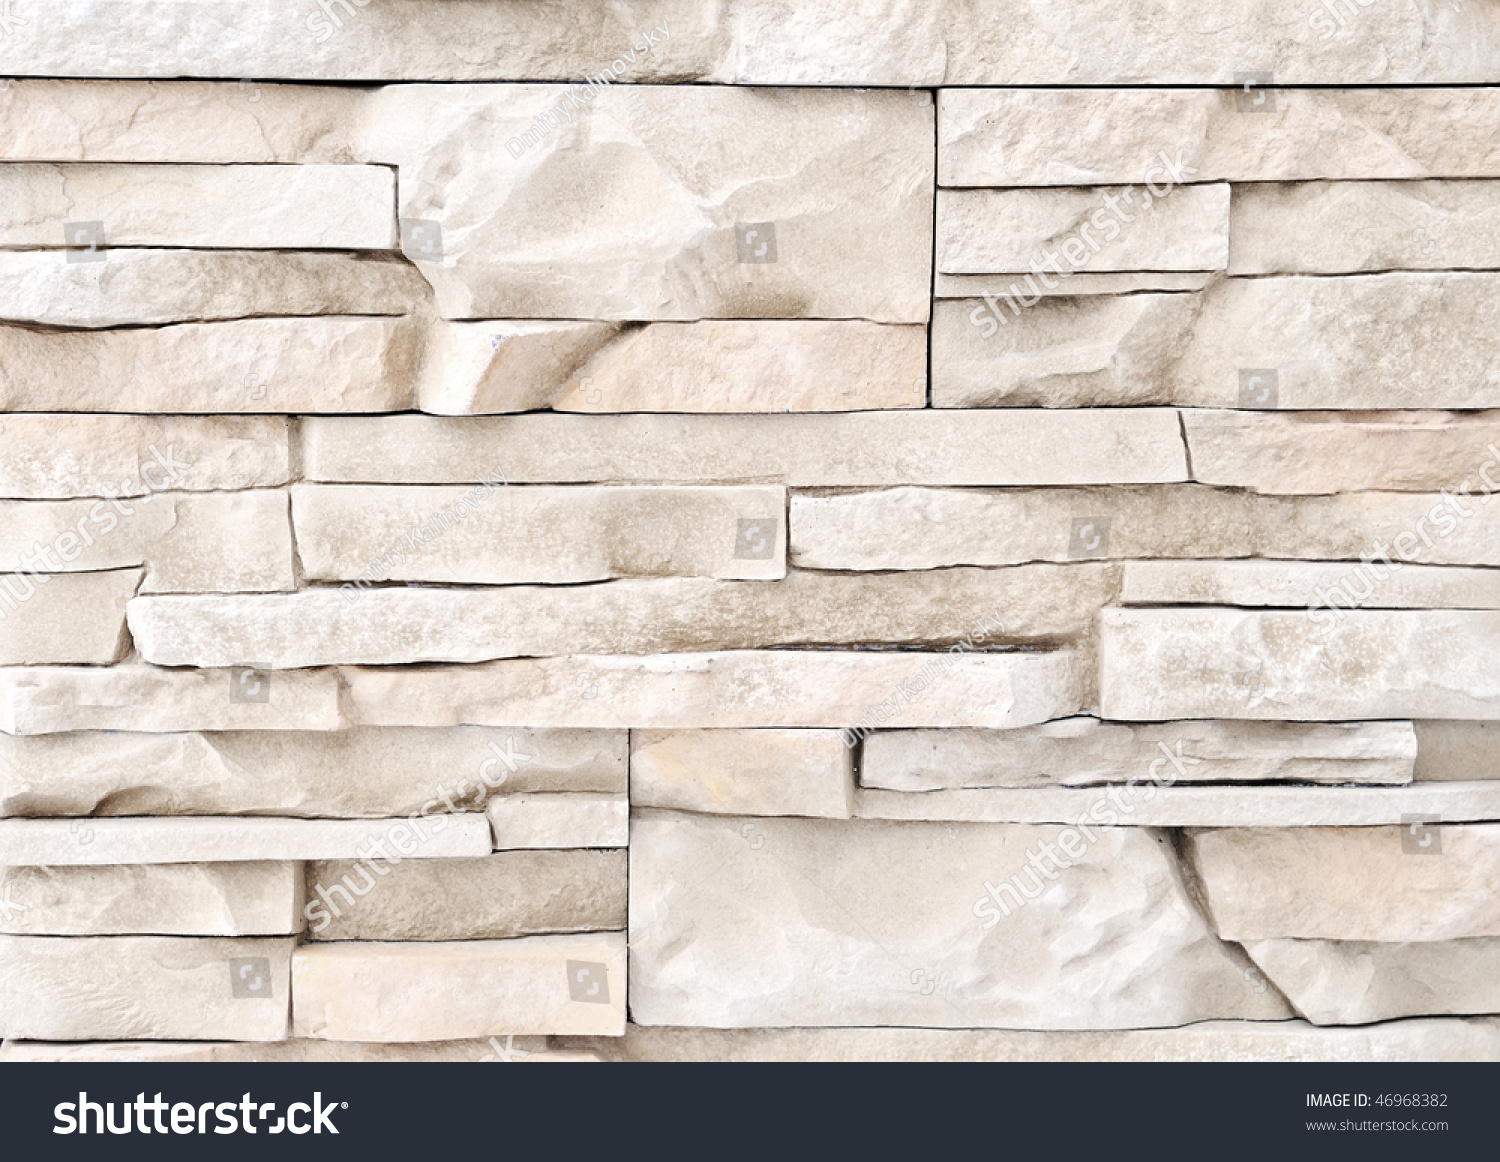 Brick Stone Exterior And Interior Decoration Building Material For Wall  Finishing Part 44